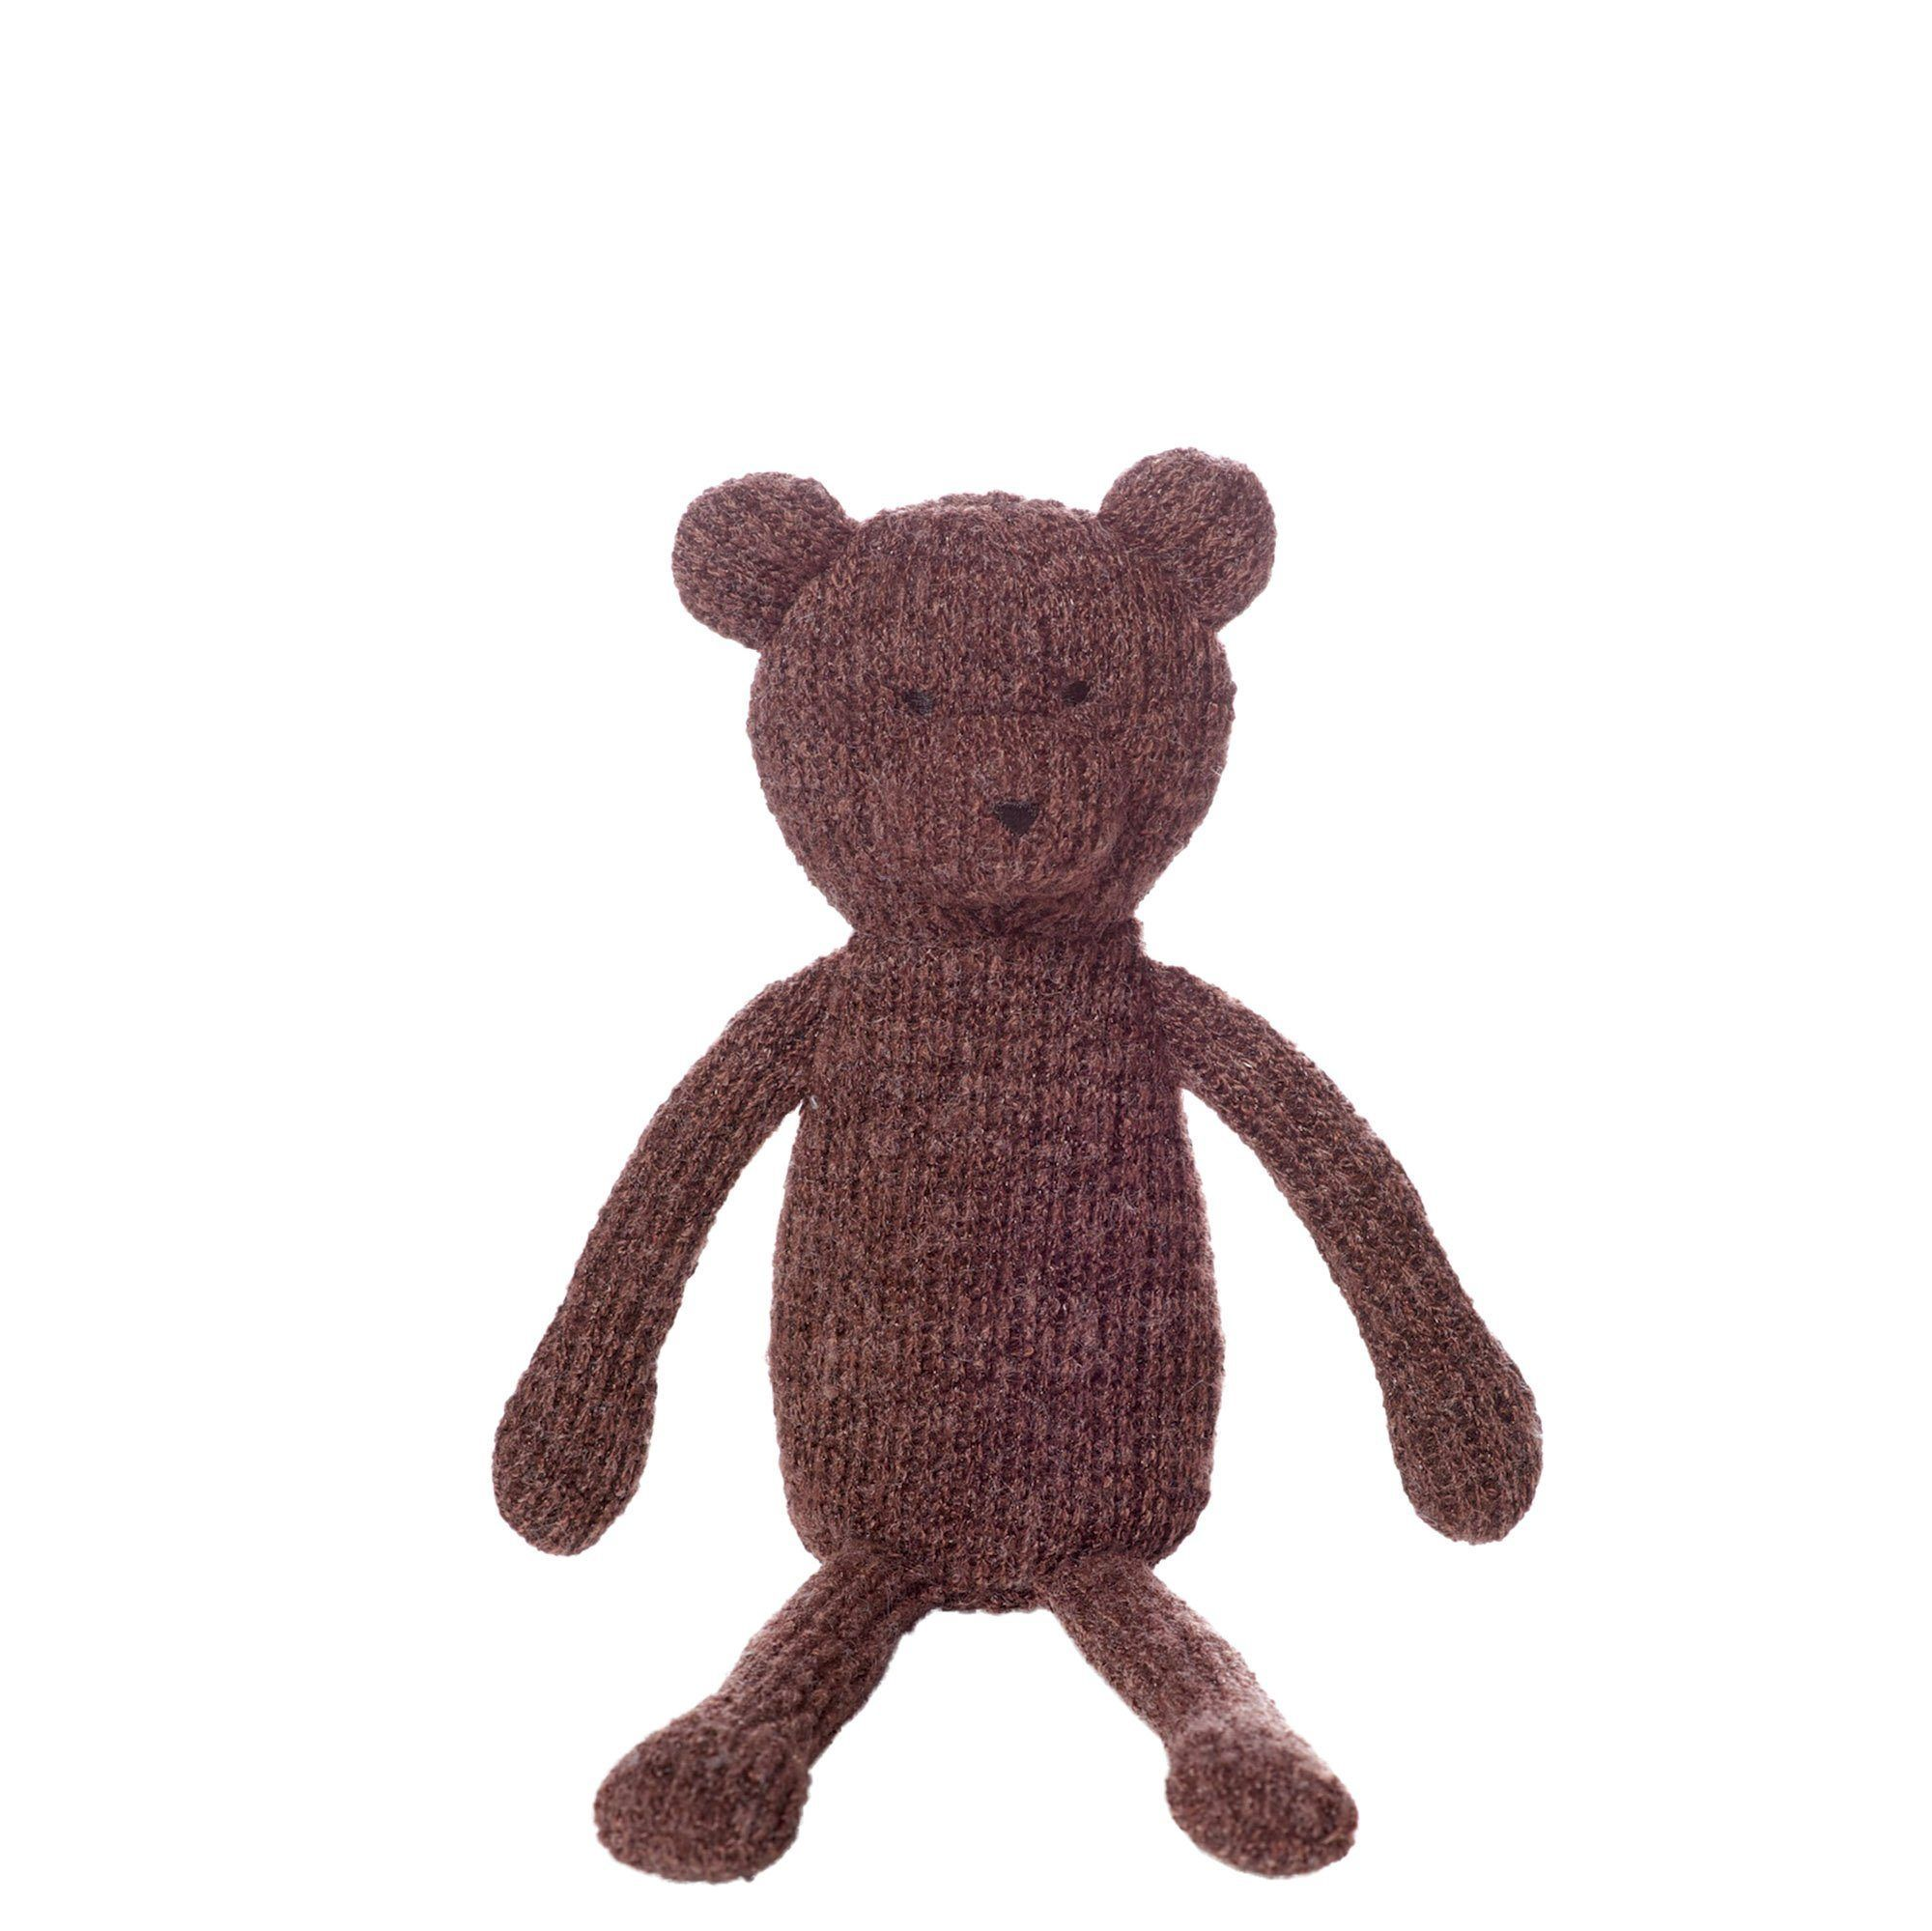 Can You Wash Stuffed Animals That Say Surface Wash Only Knits Juno Bear Stuffed Animal Manhattan Toy Knitted Stuffed Animals